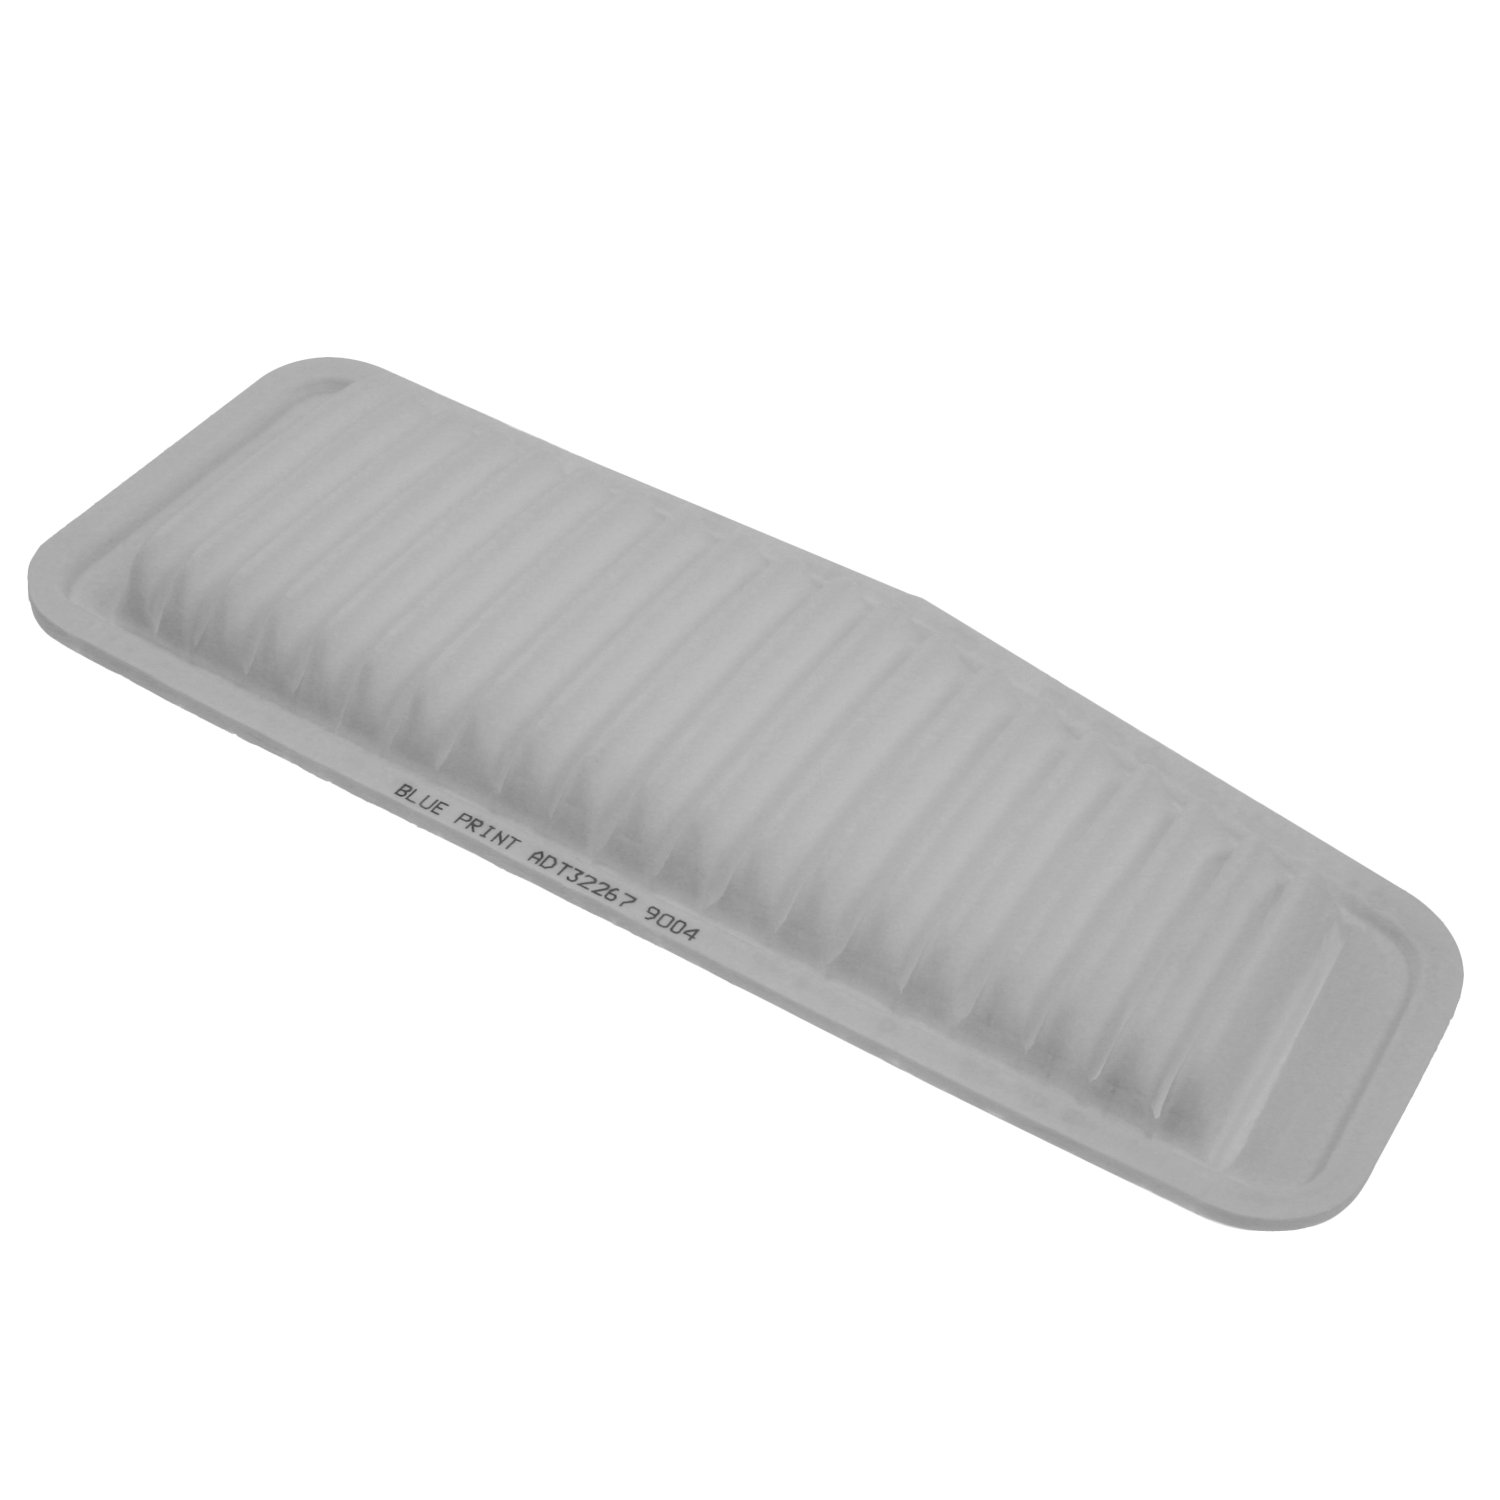 Blue Print ADG02254 Air Filter pack of one